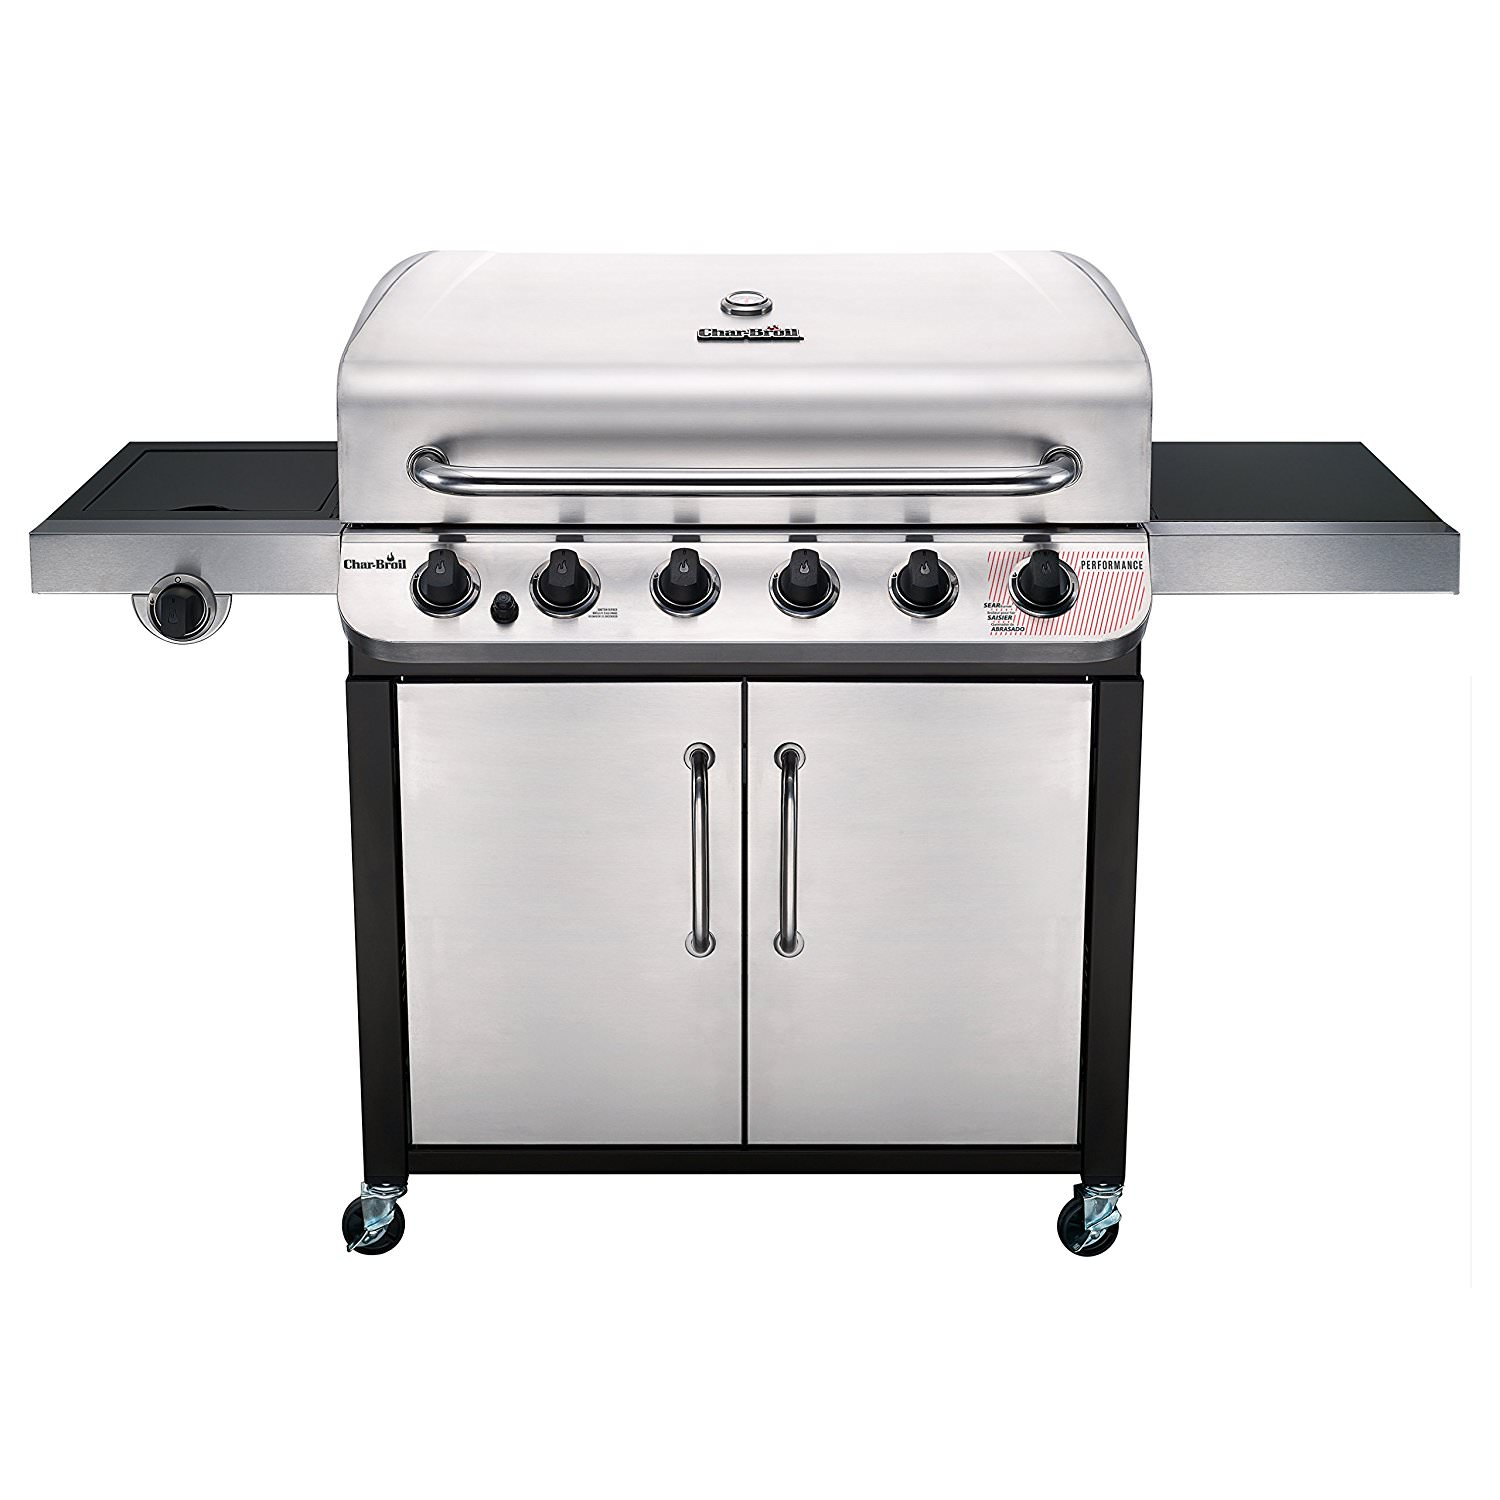 Char-Broil Performance Series 6-burner Gas Grill by Char Broil